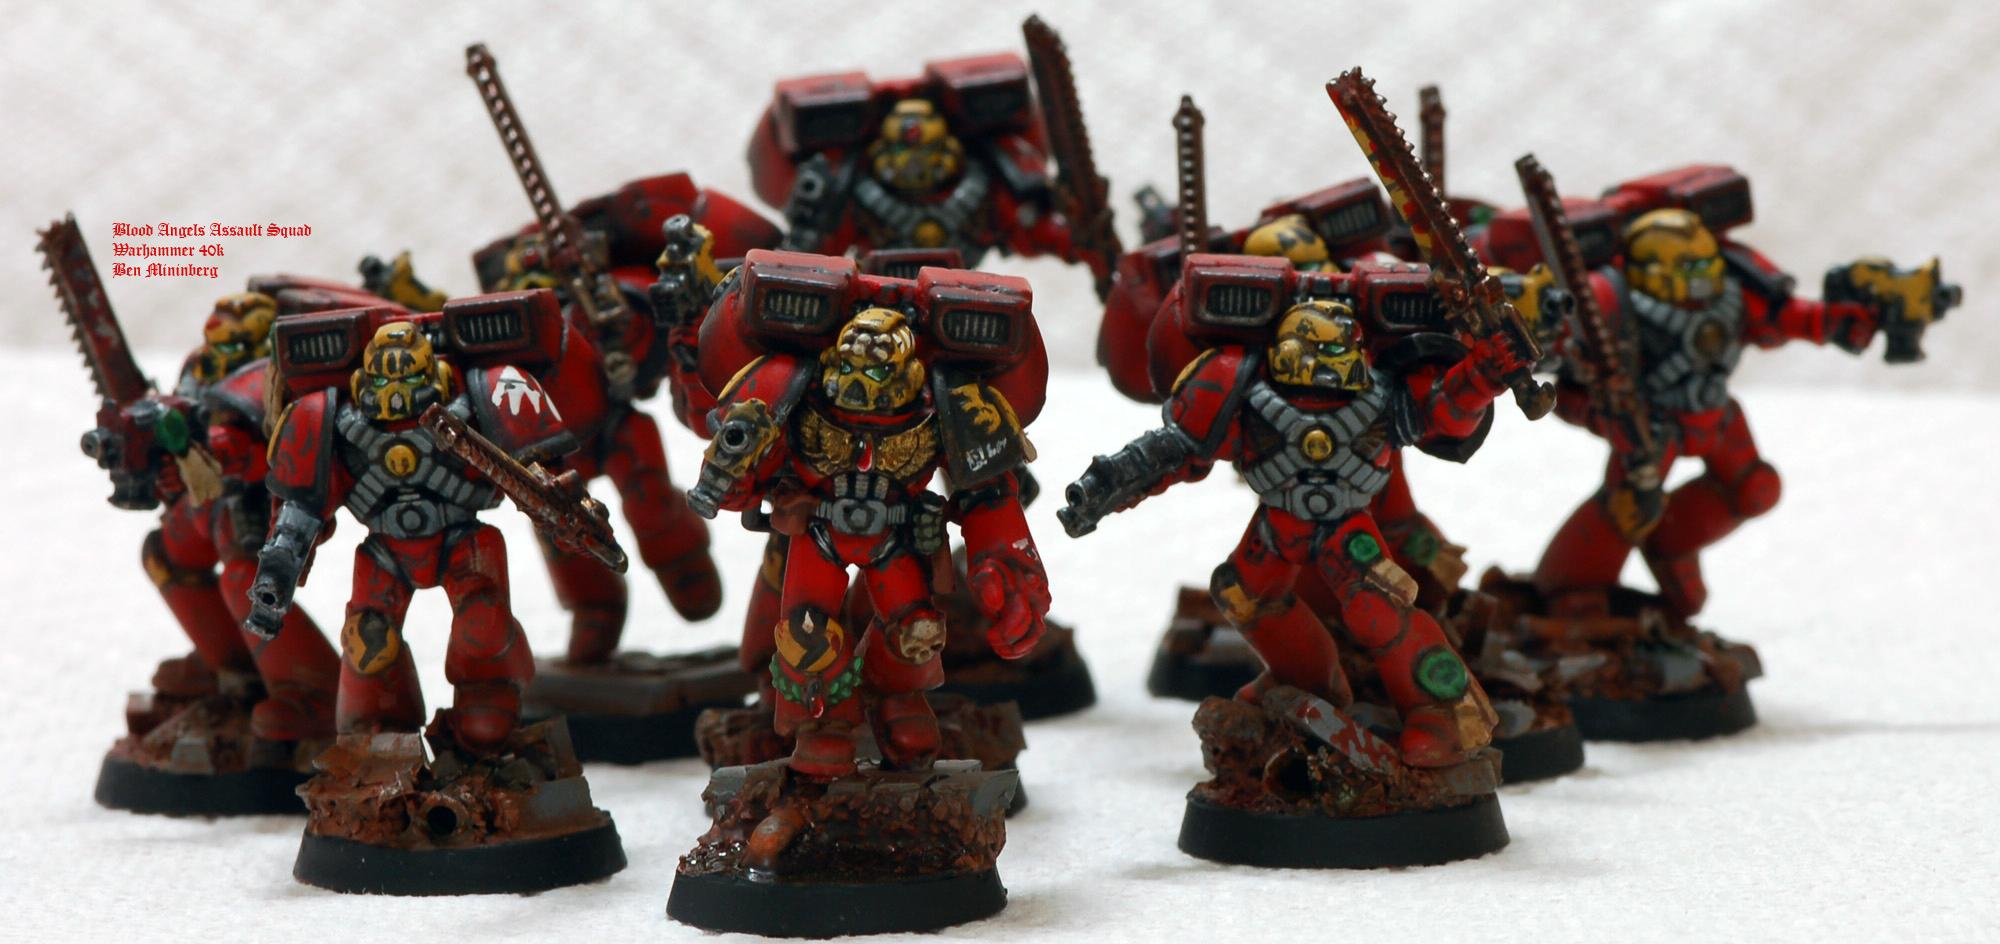 Action, Angel, Assault, Base, Blood, Chainsword, Red, Scenic, Space Marines, Weathered